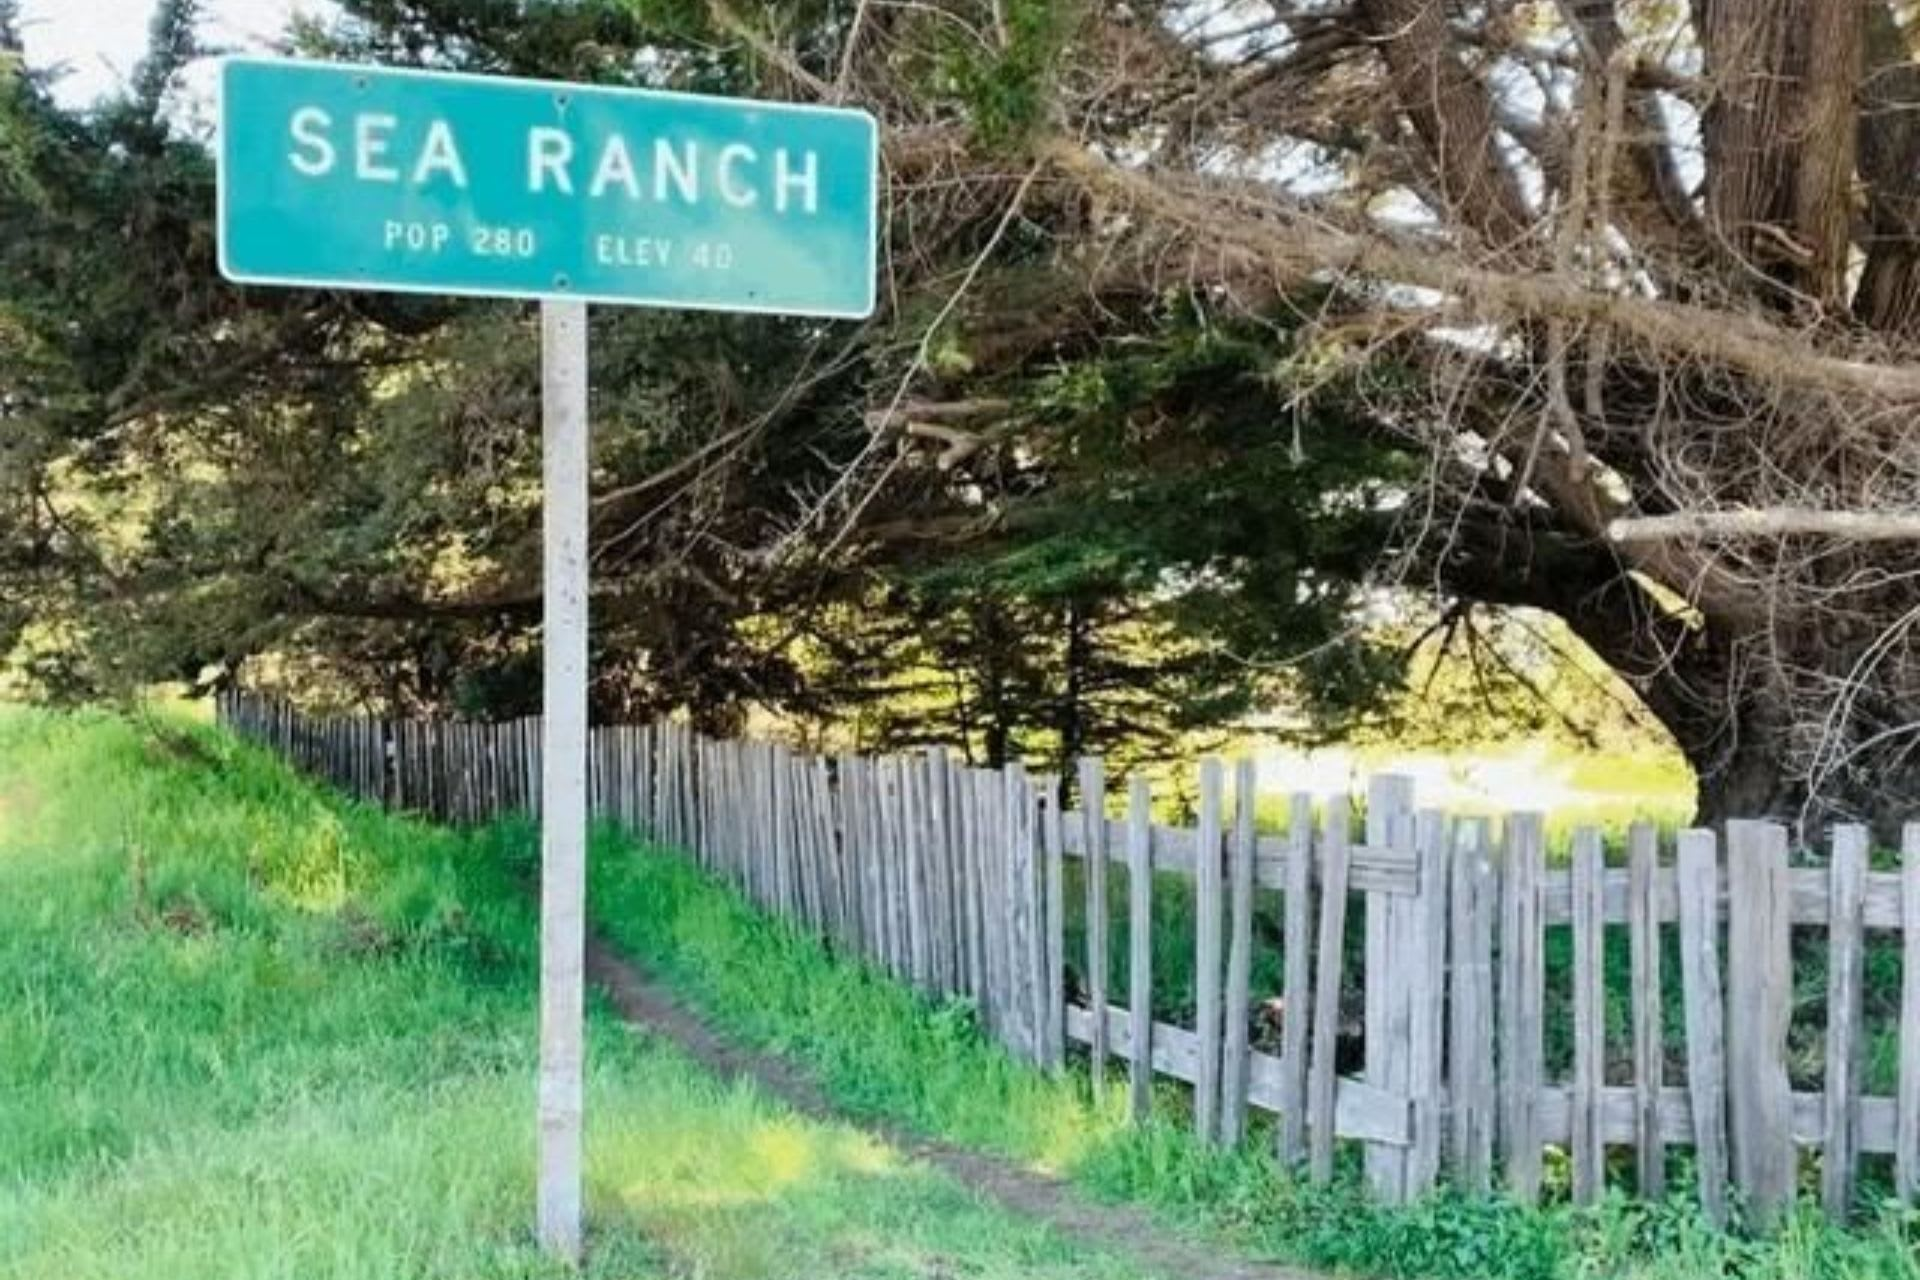 5 Facts About The Sea Ranch